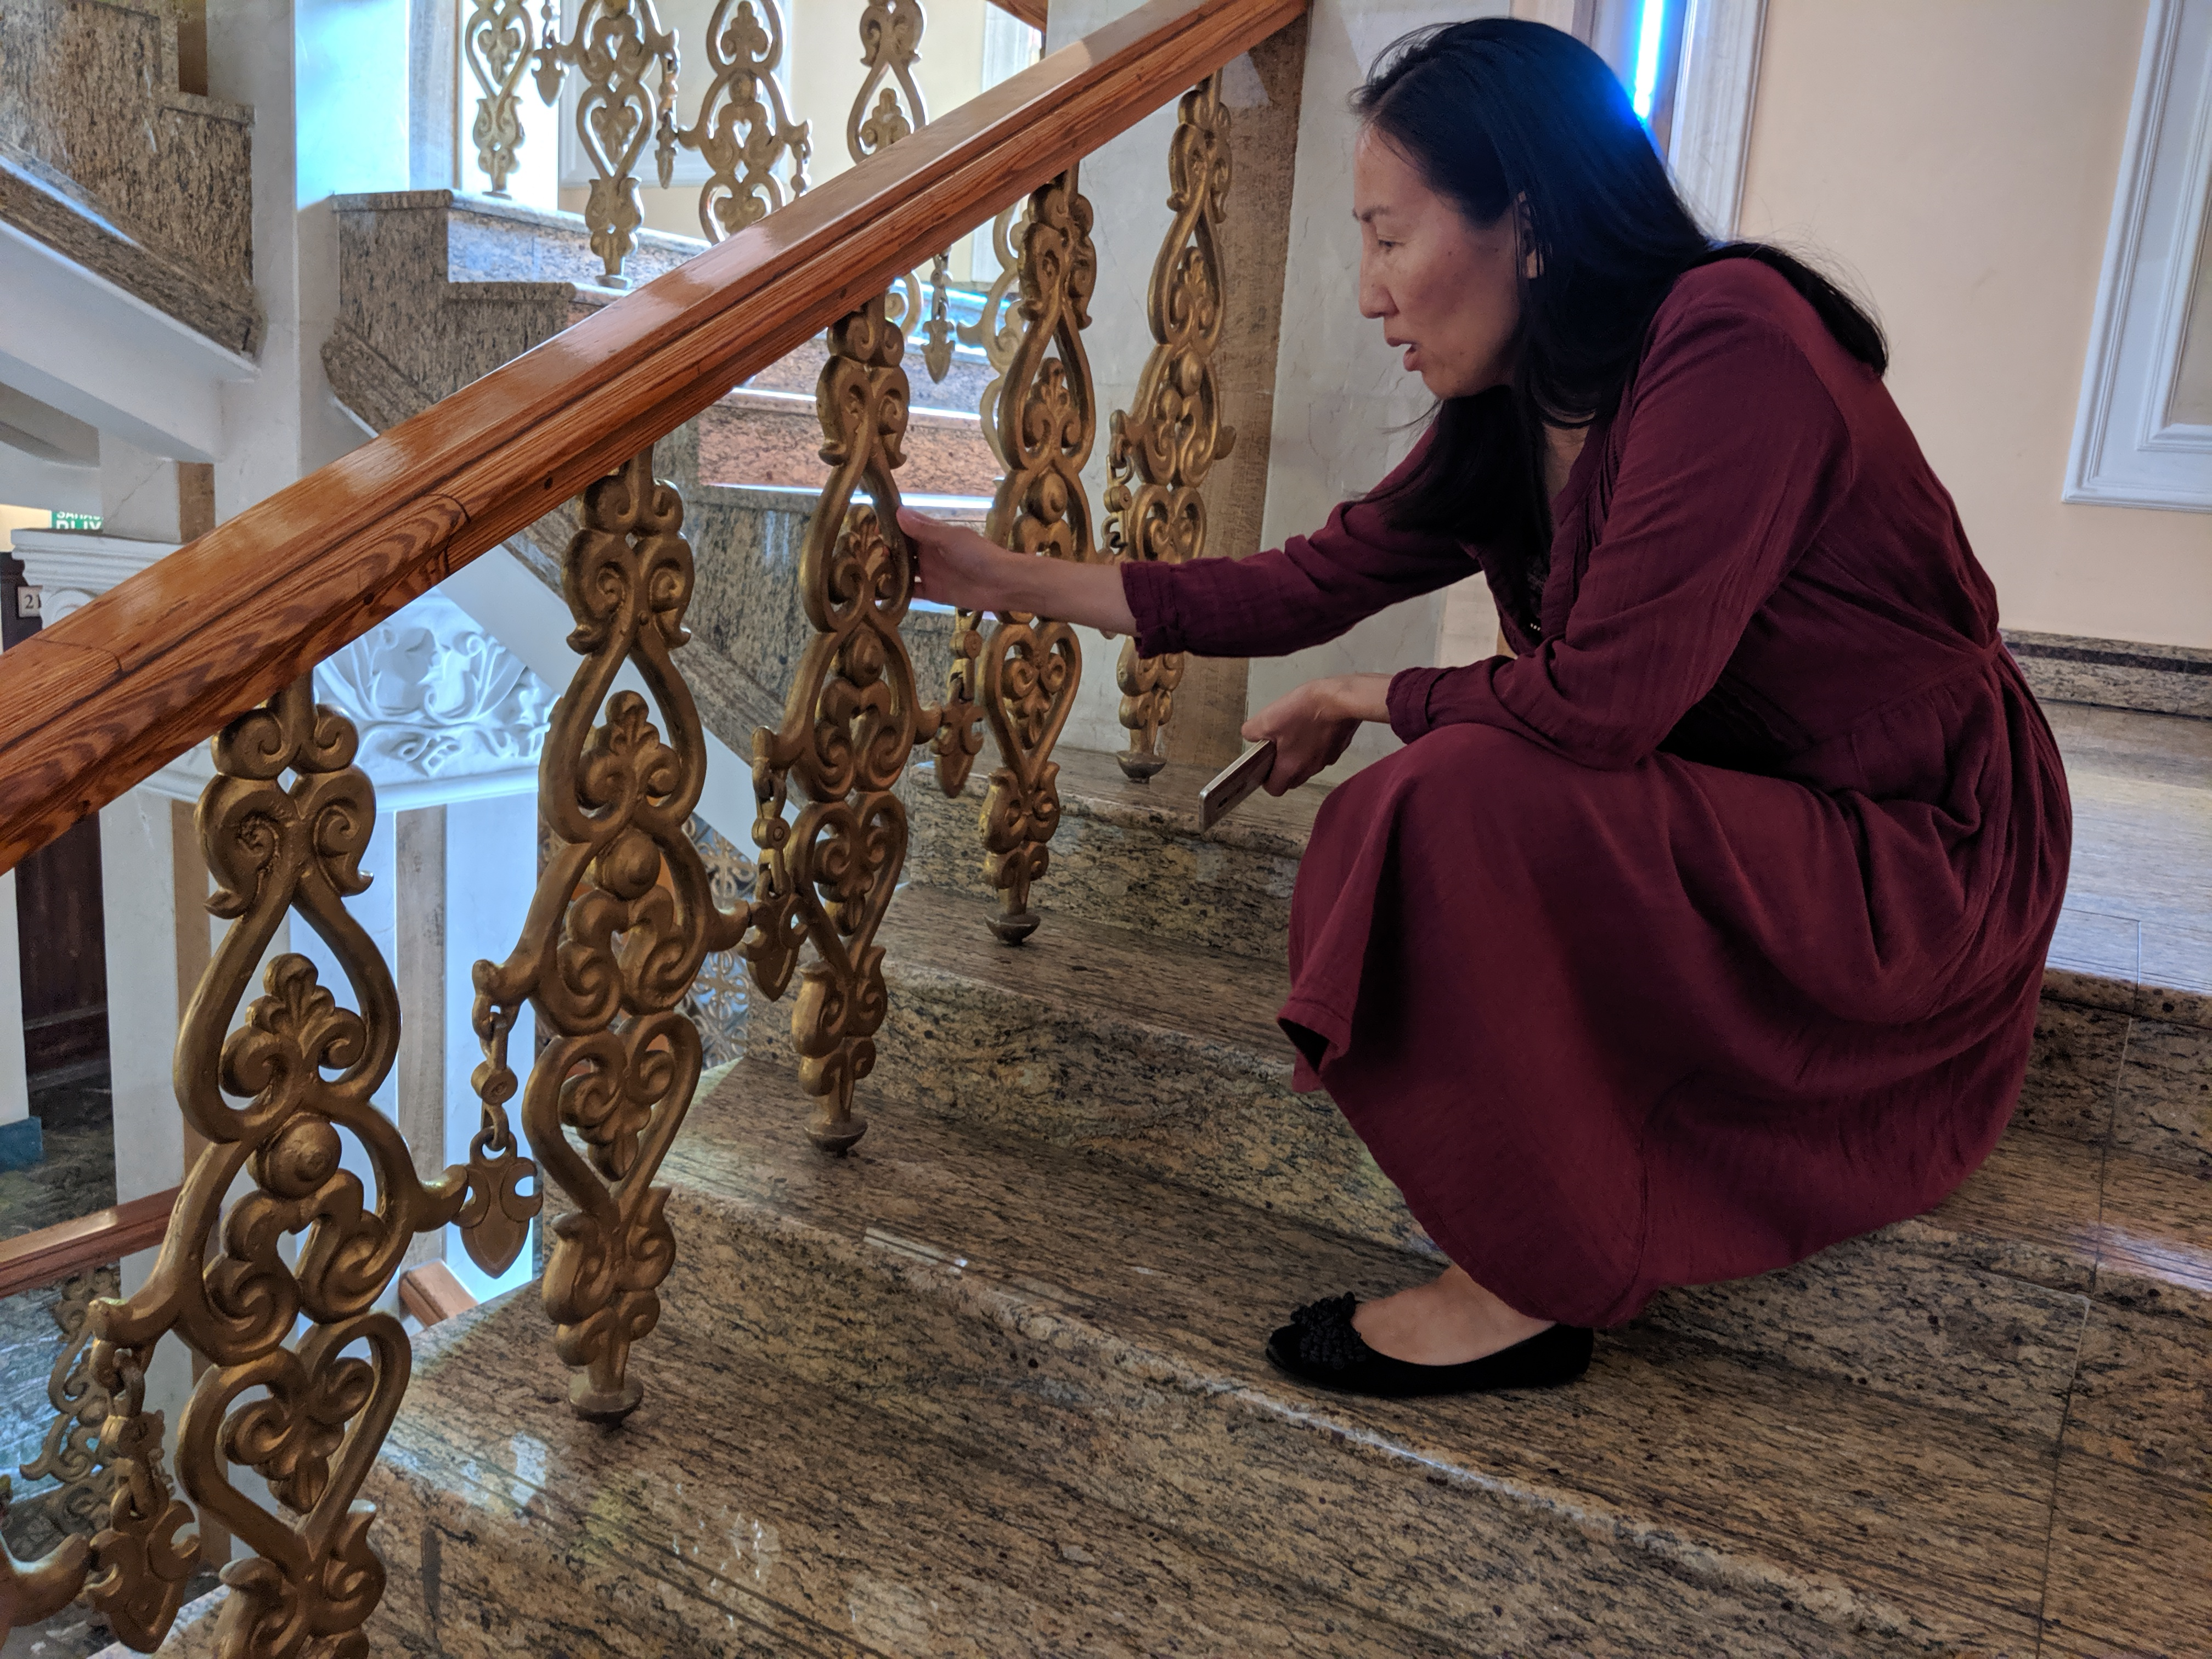 Staircase at ballet and opera theater in Ulan-Ude